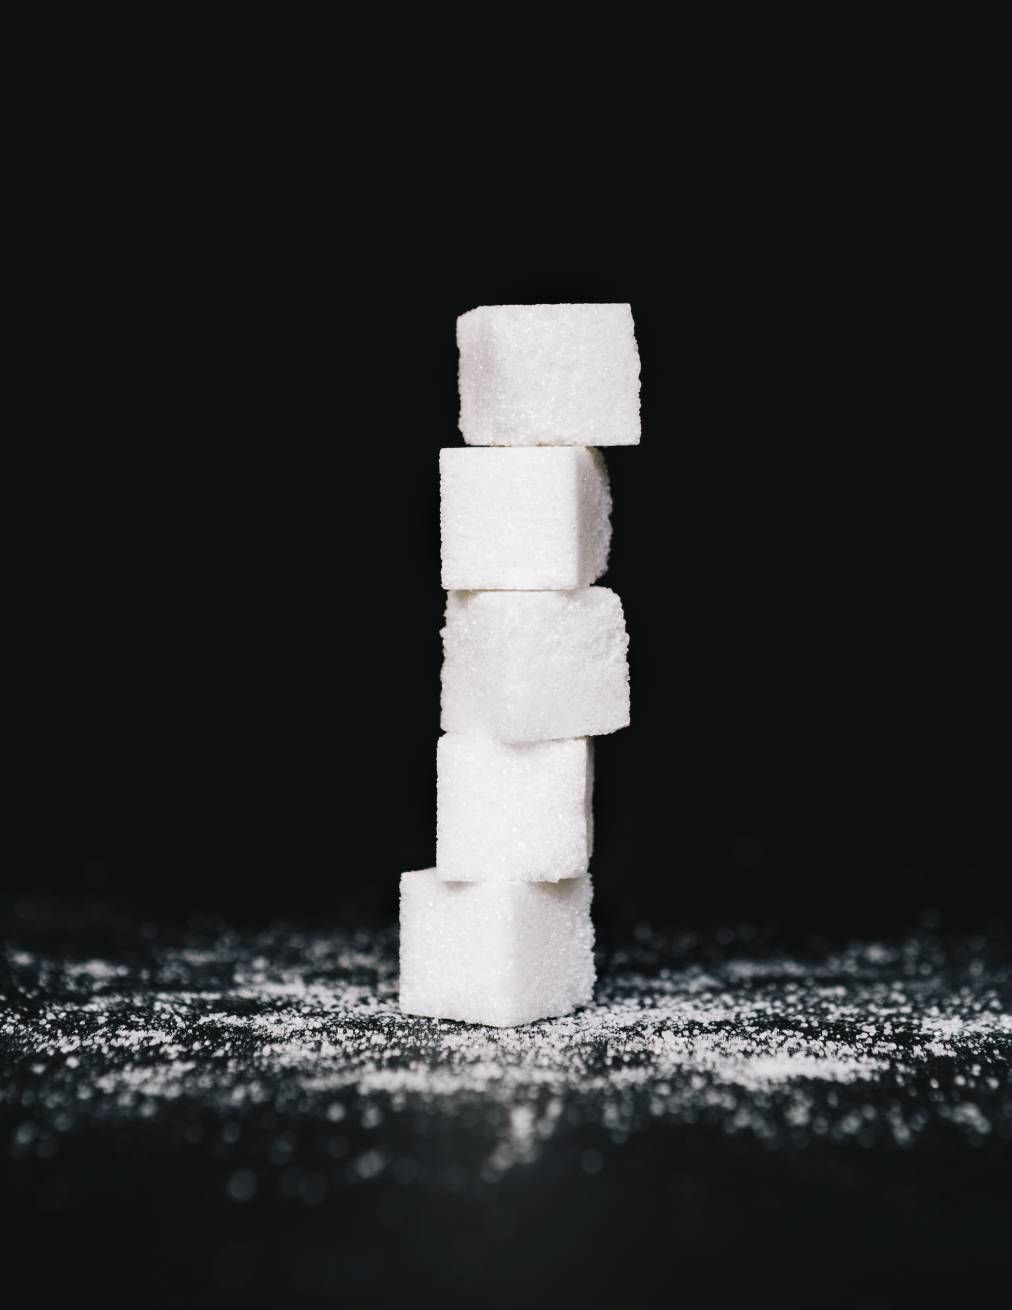 When it comes to sugar, less is usually more